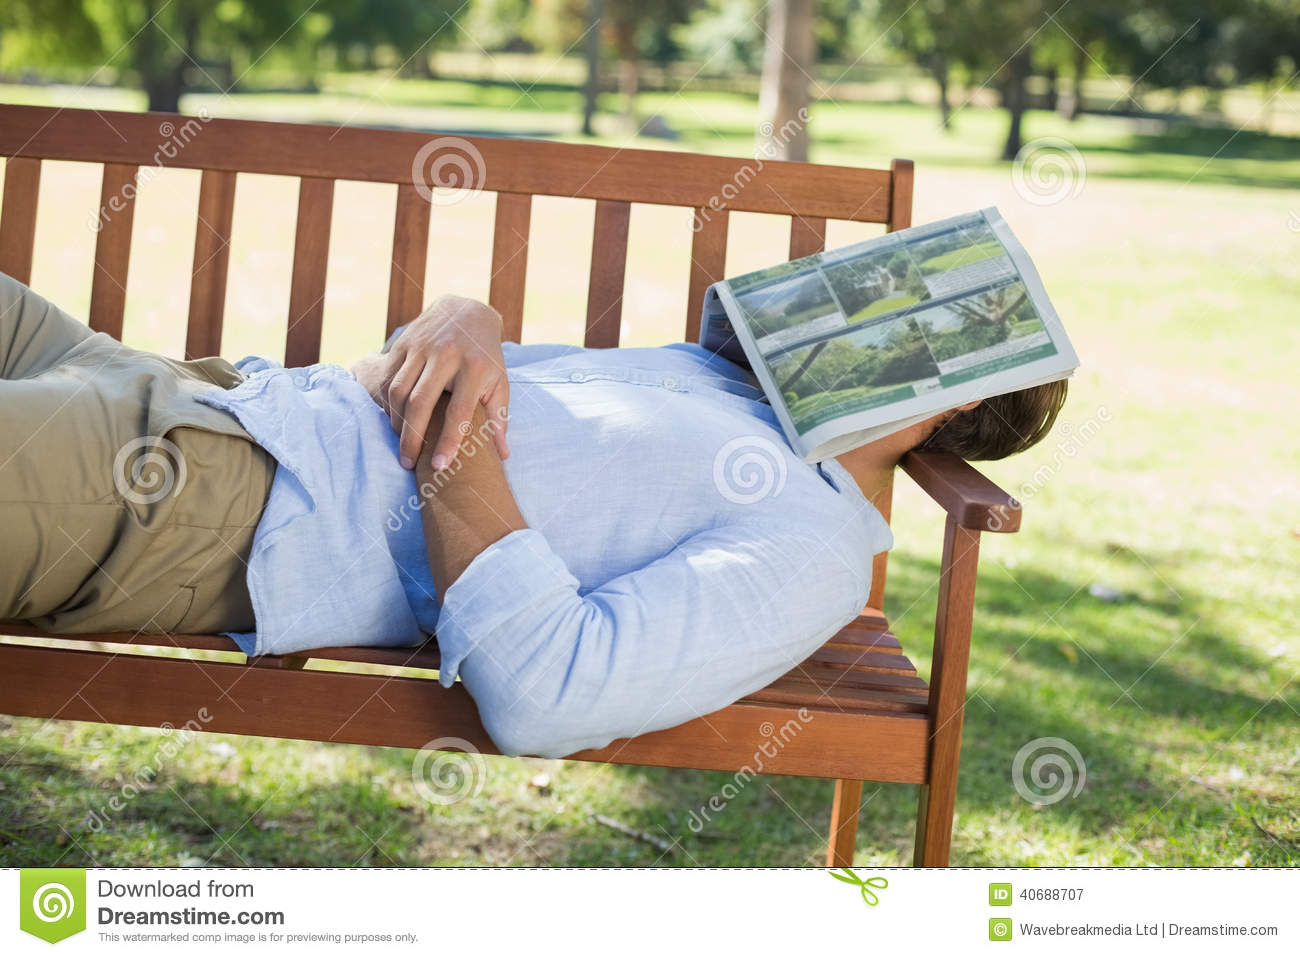 Man Sleeping On Park Bench With Newspaper Over Face Stock Photo ...